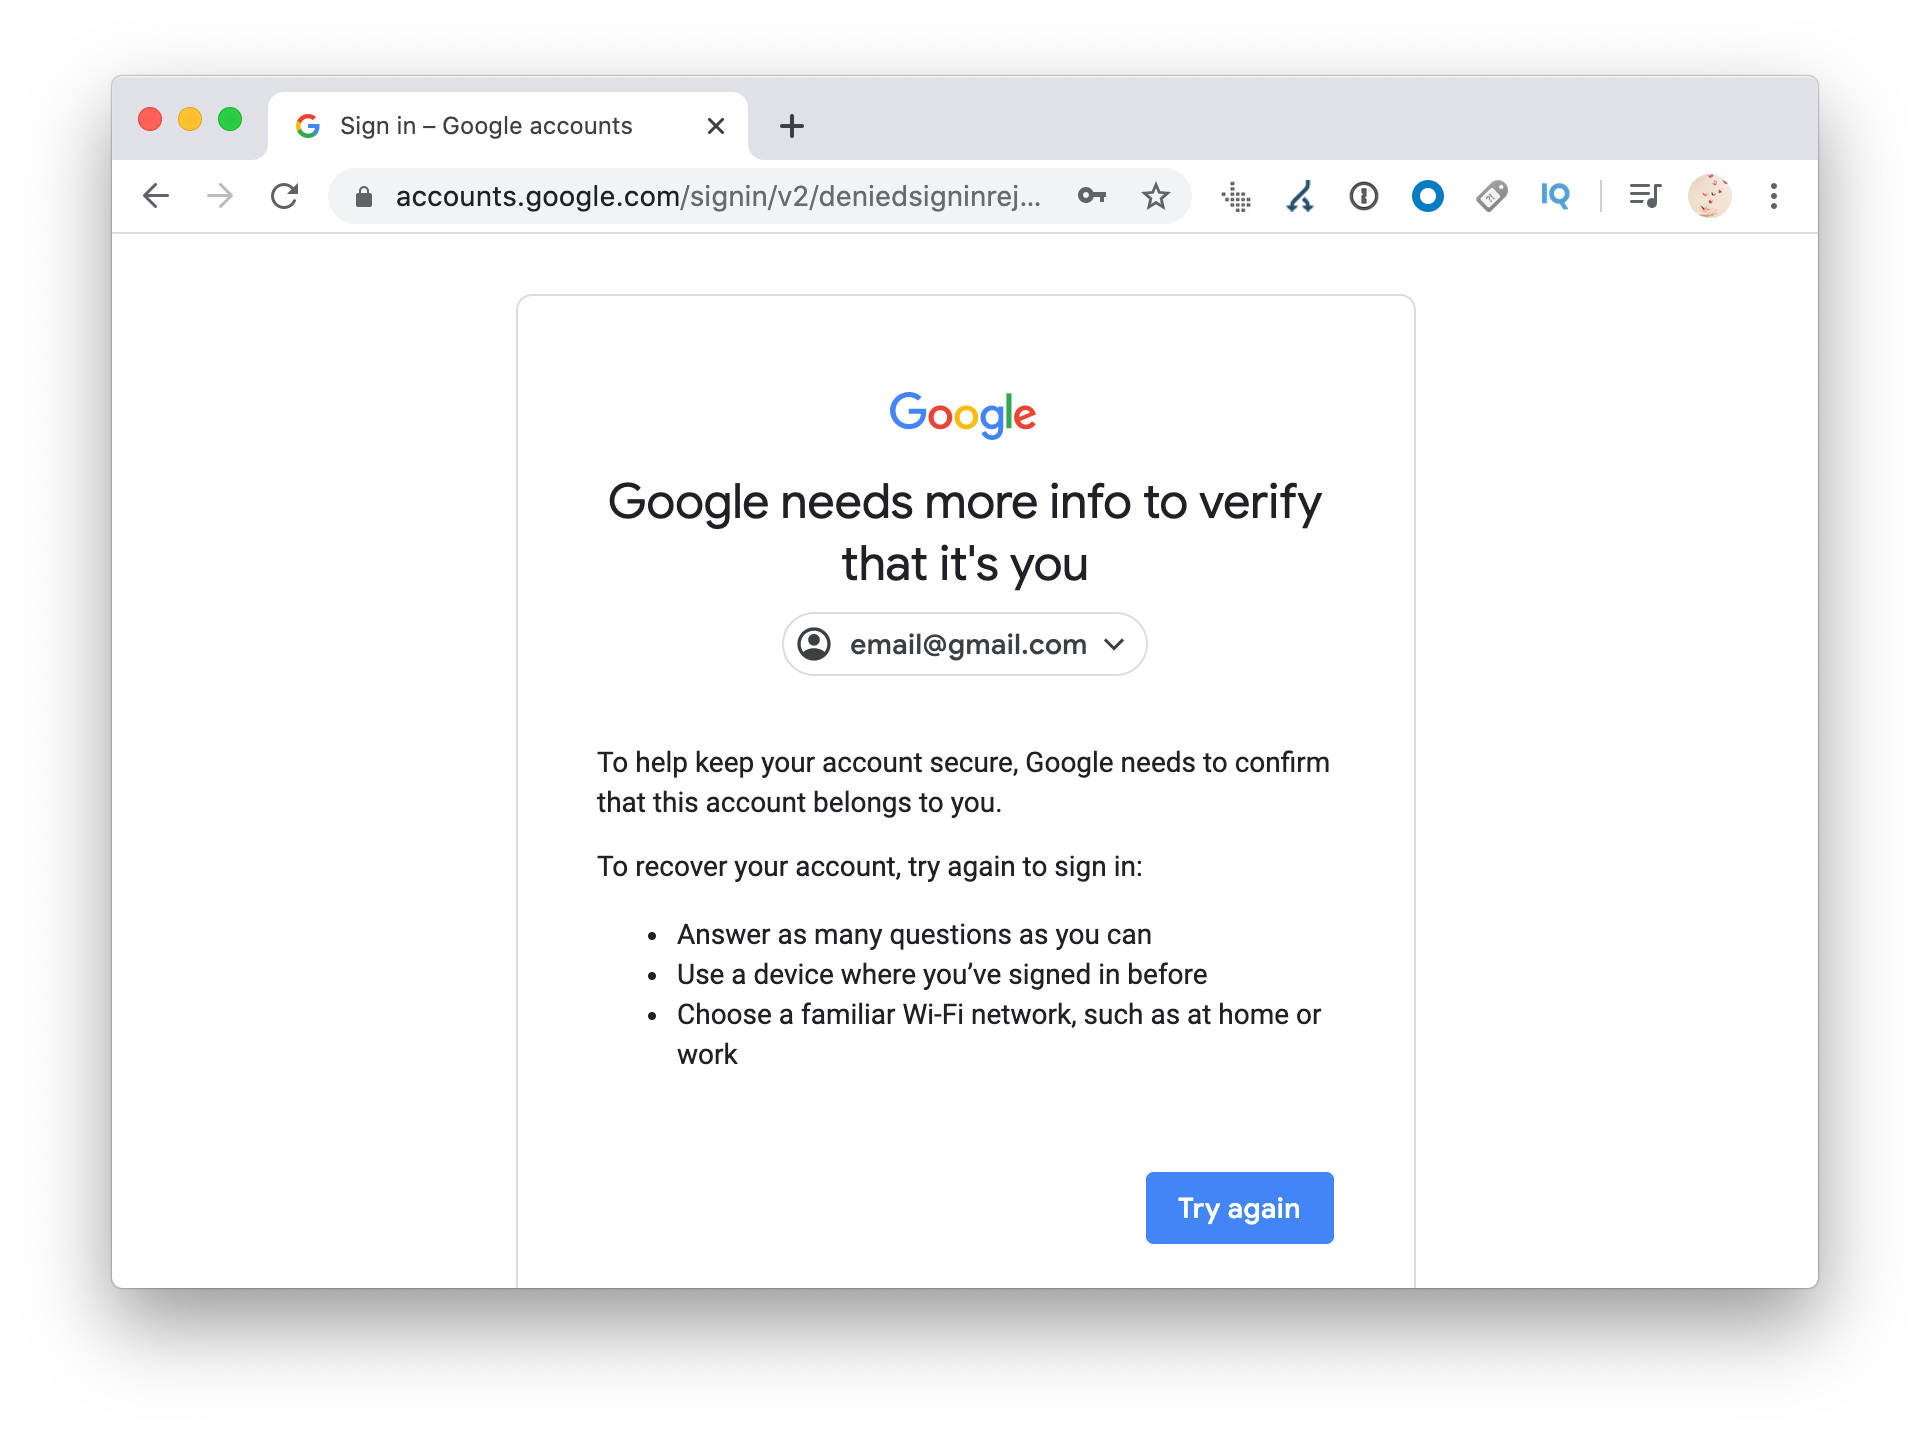 Google needs more info to verify that it's you